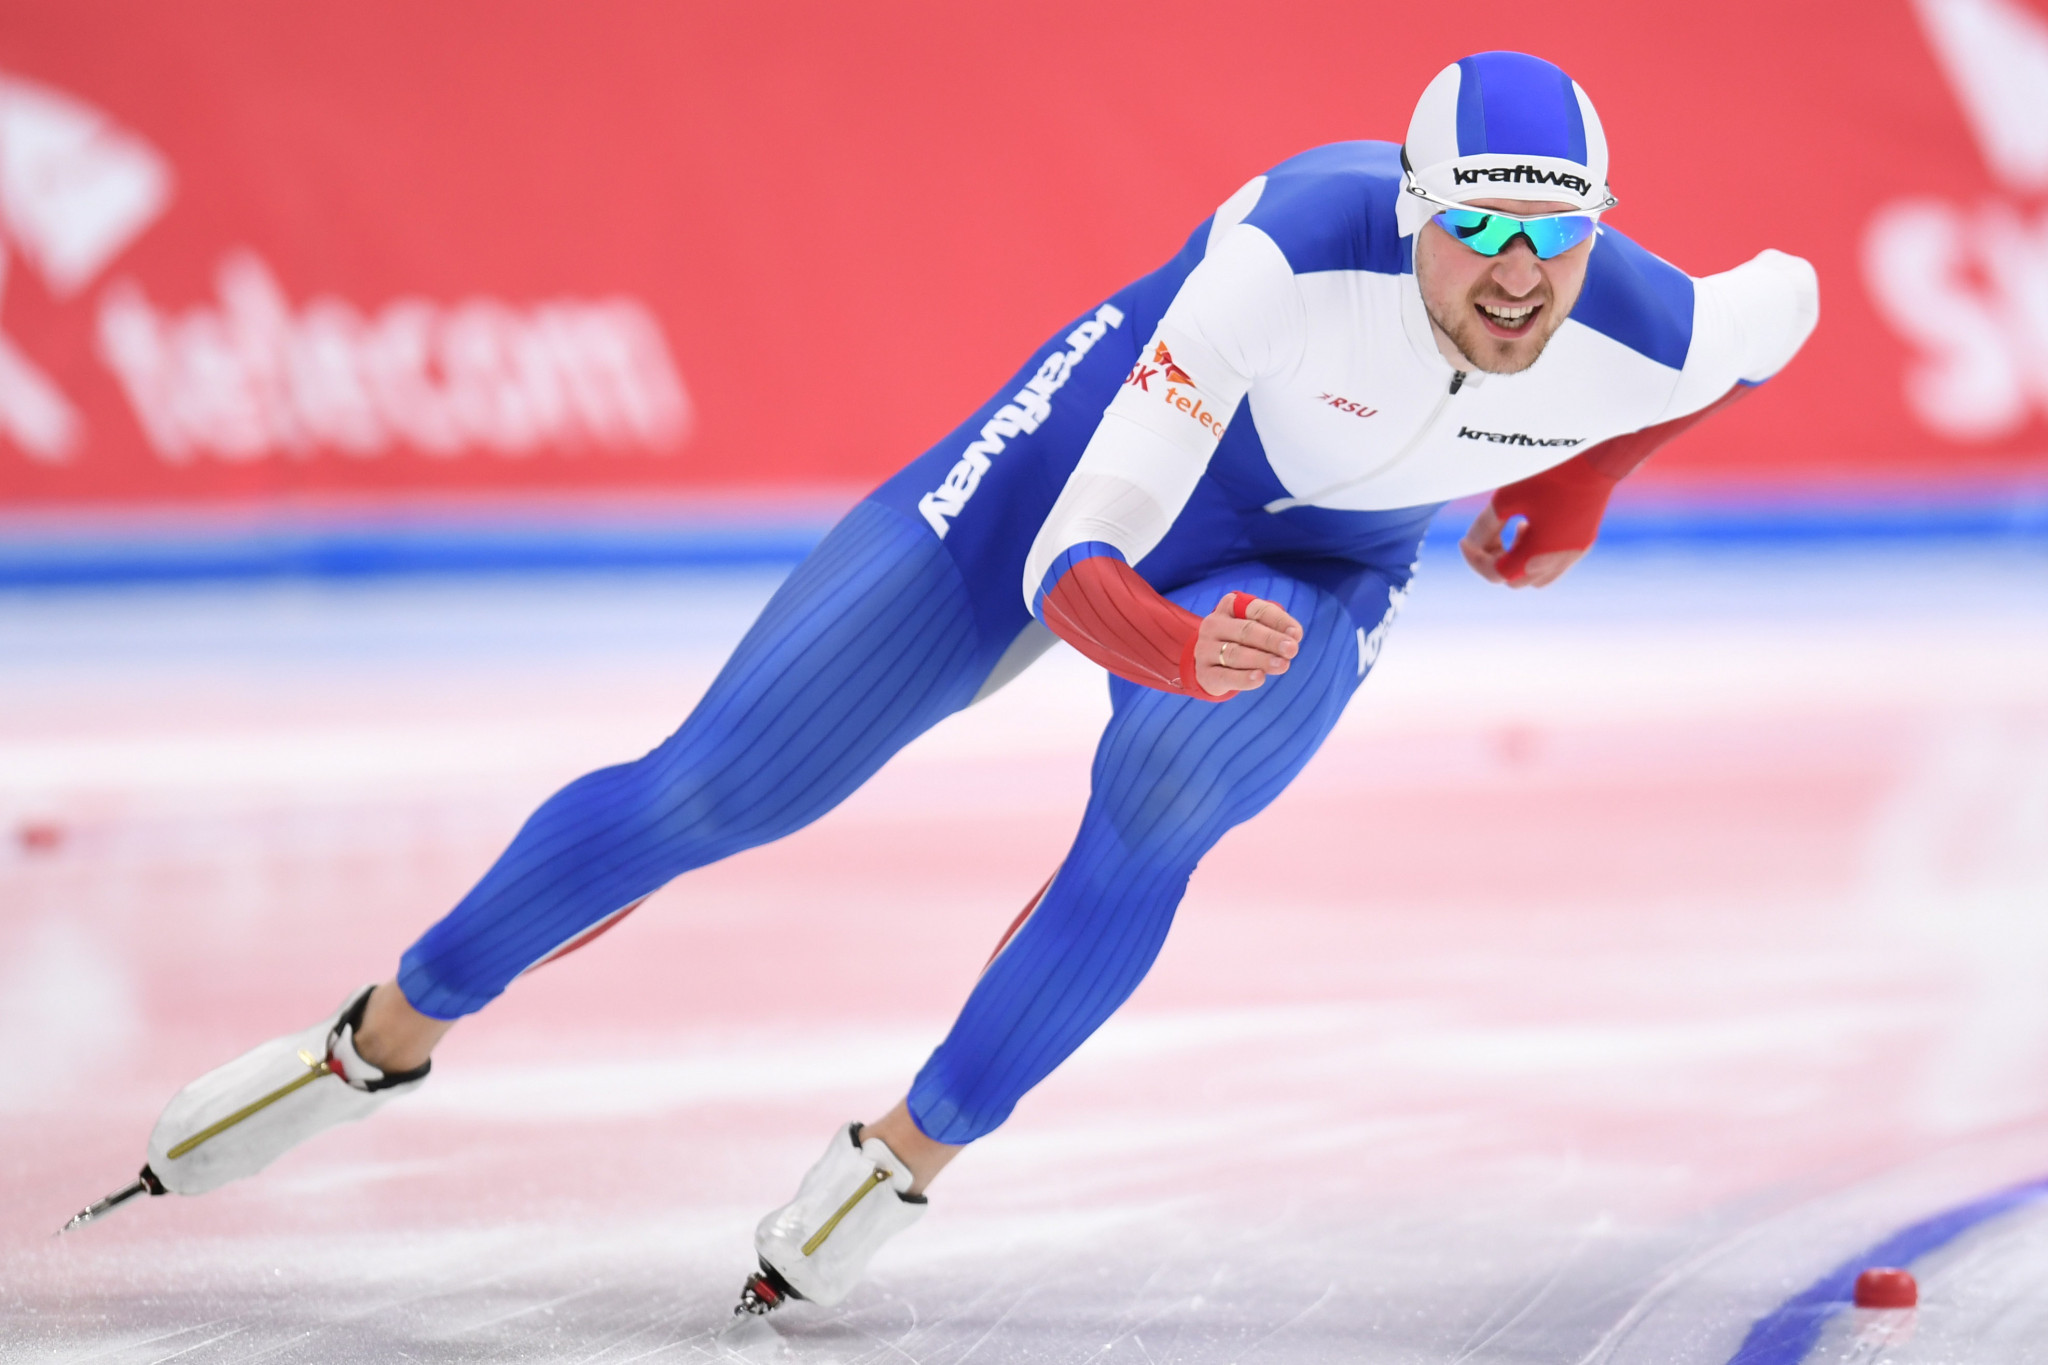 Kolomna poised to stage European Single Distance Championships